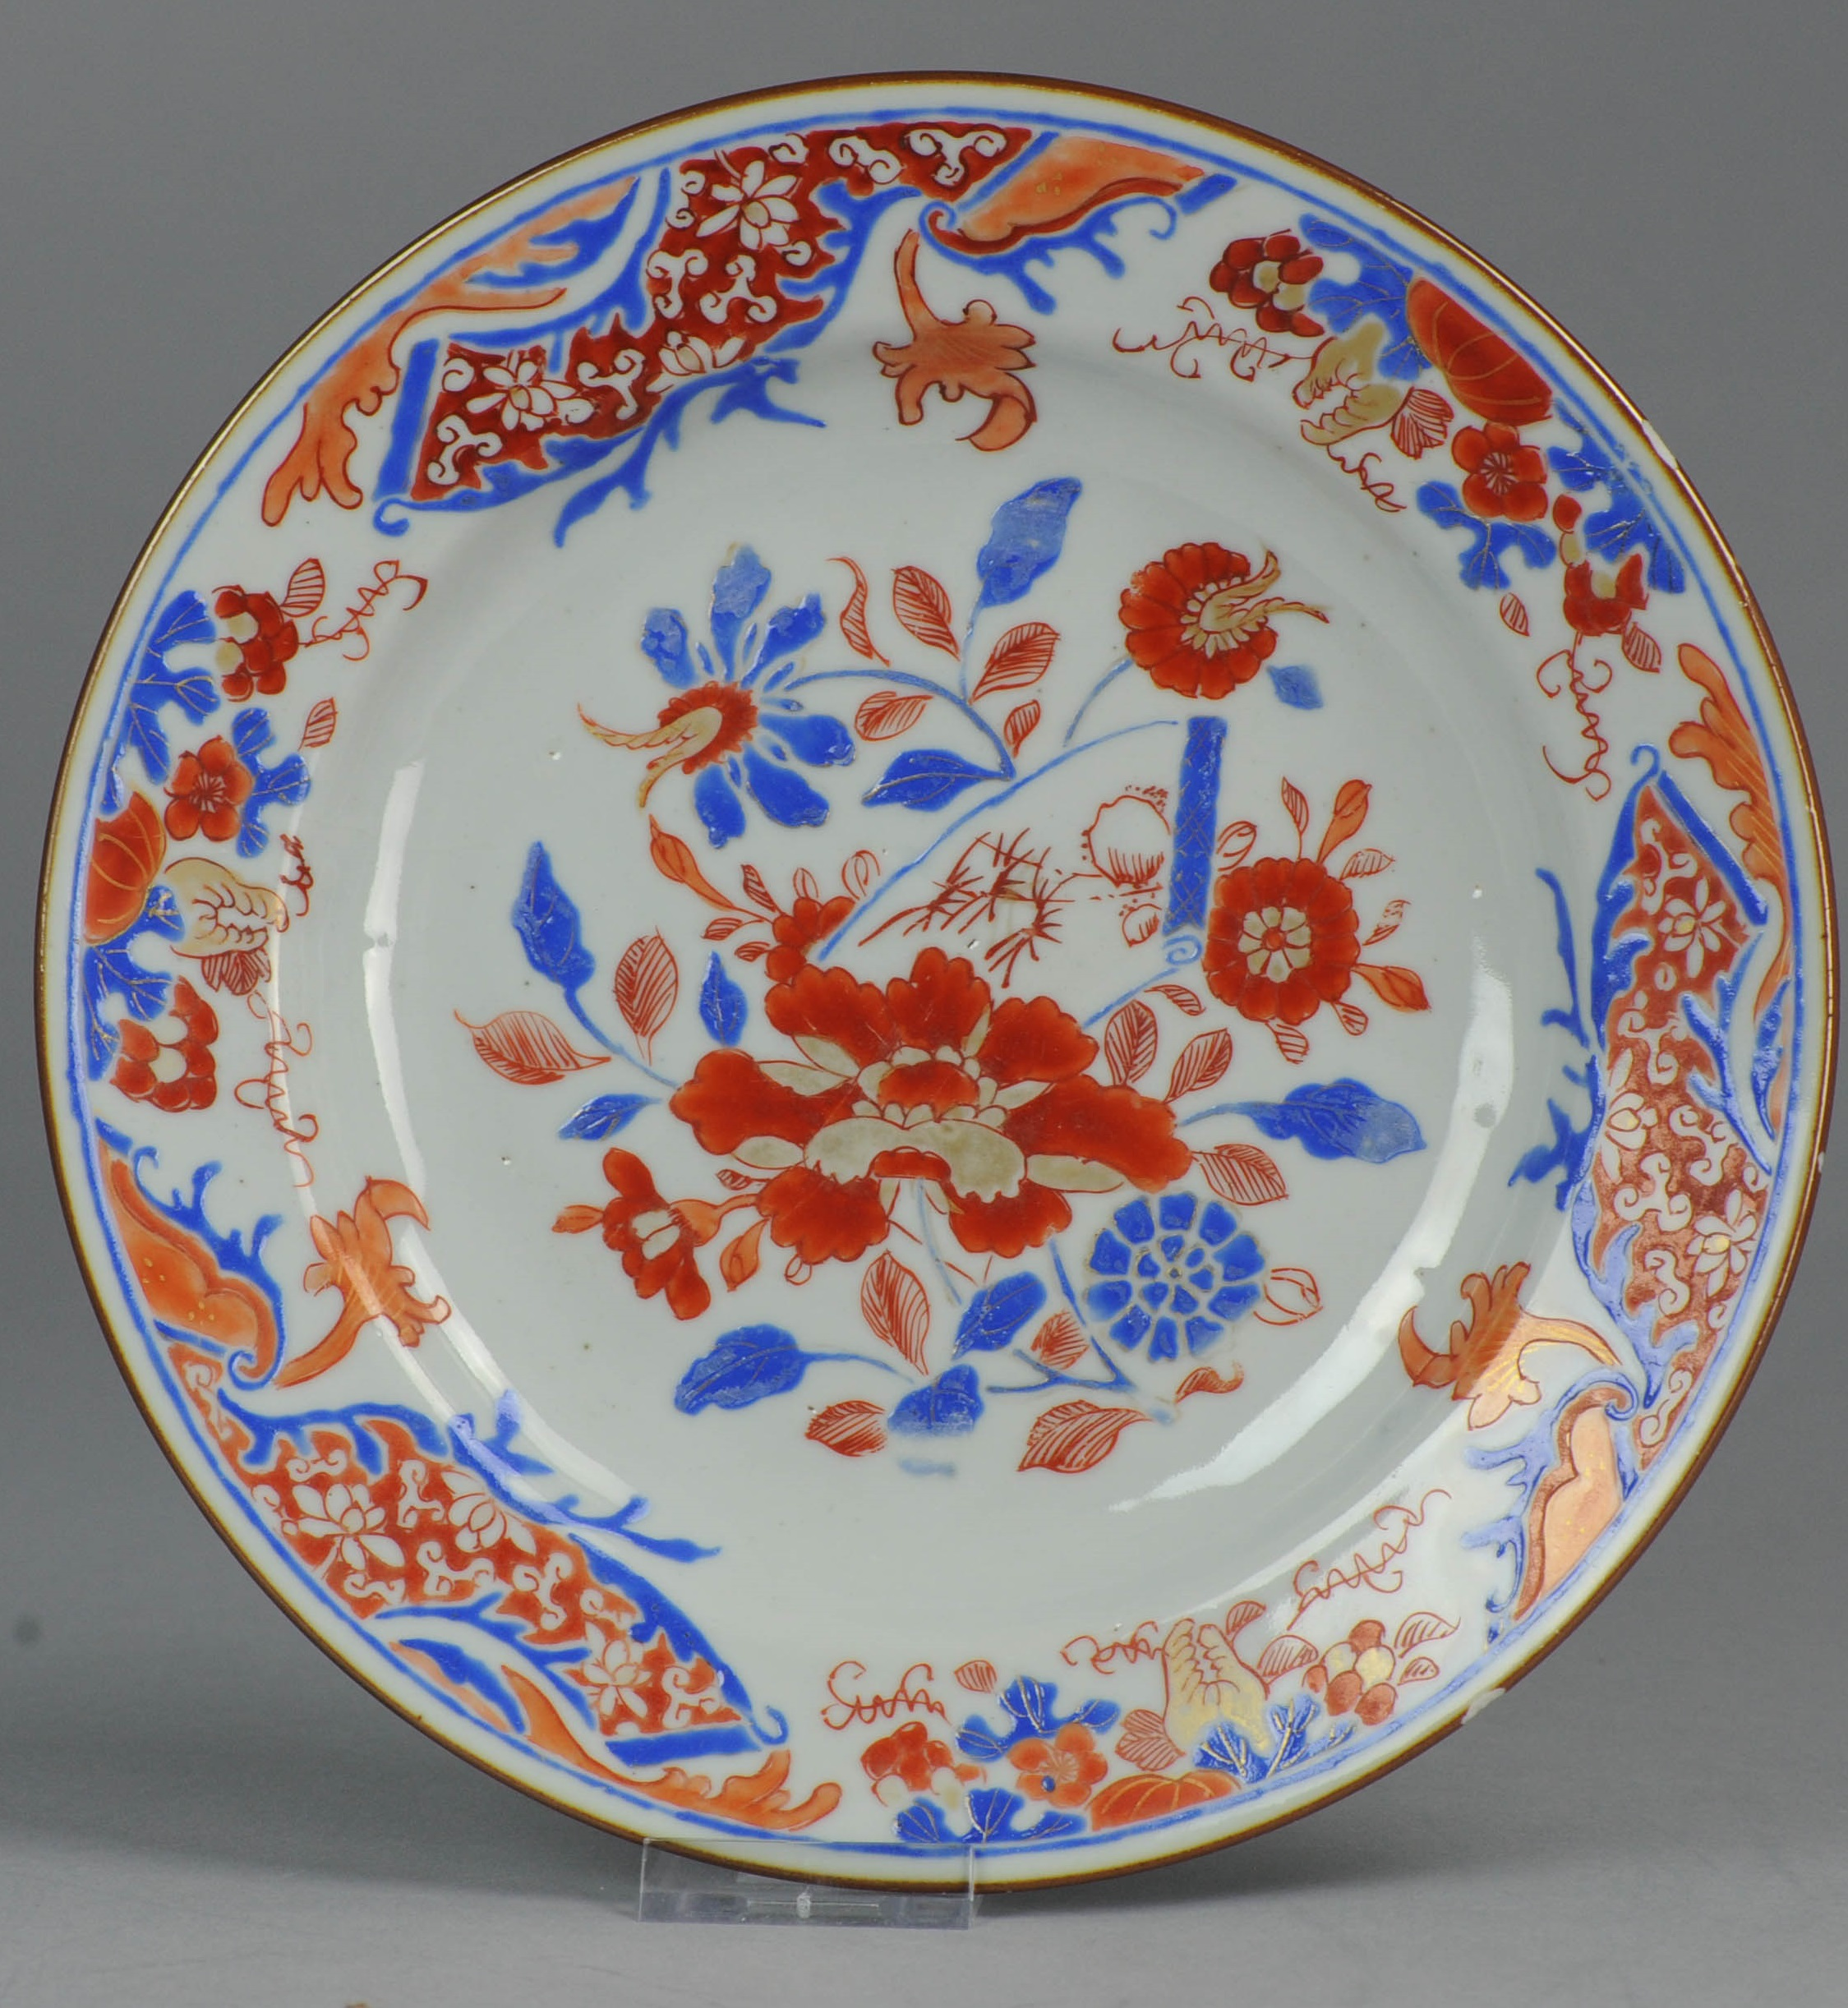 Antique 18th Chinese Porcelain Dinner Plate Scroll Red \u0026 Blue China Chinese  sc 1 st  eBay & Antique 18th Chinese Porcelain Dinner Plate Scroll Red \u0026 Blue China ...